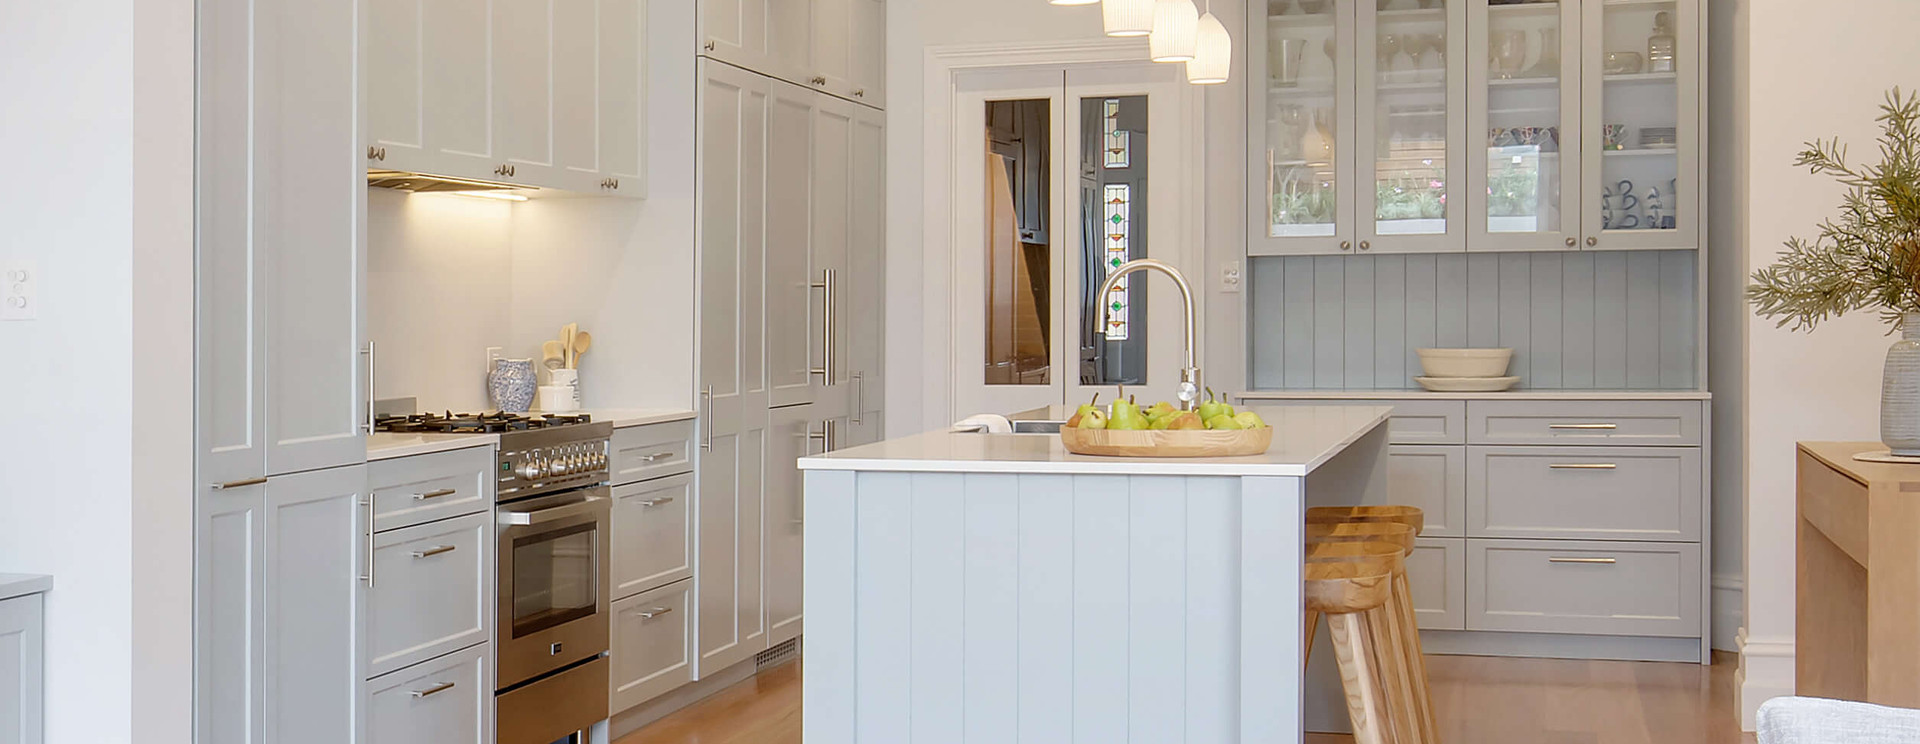 kitchen renovation joinery Northern beac